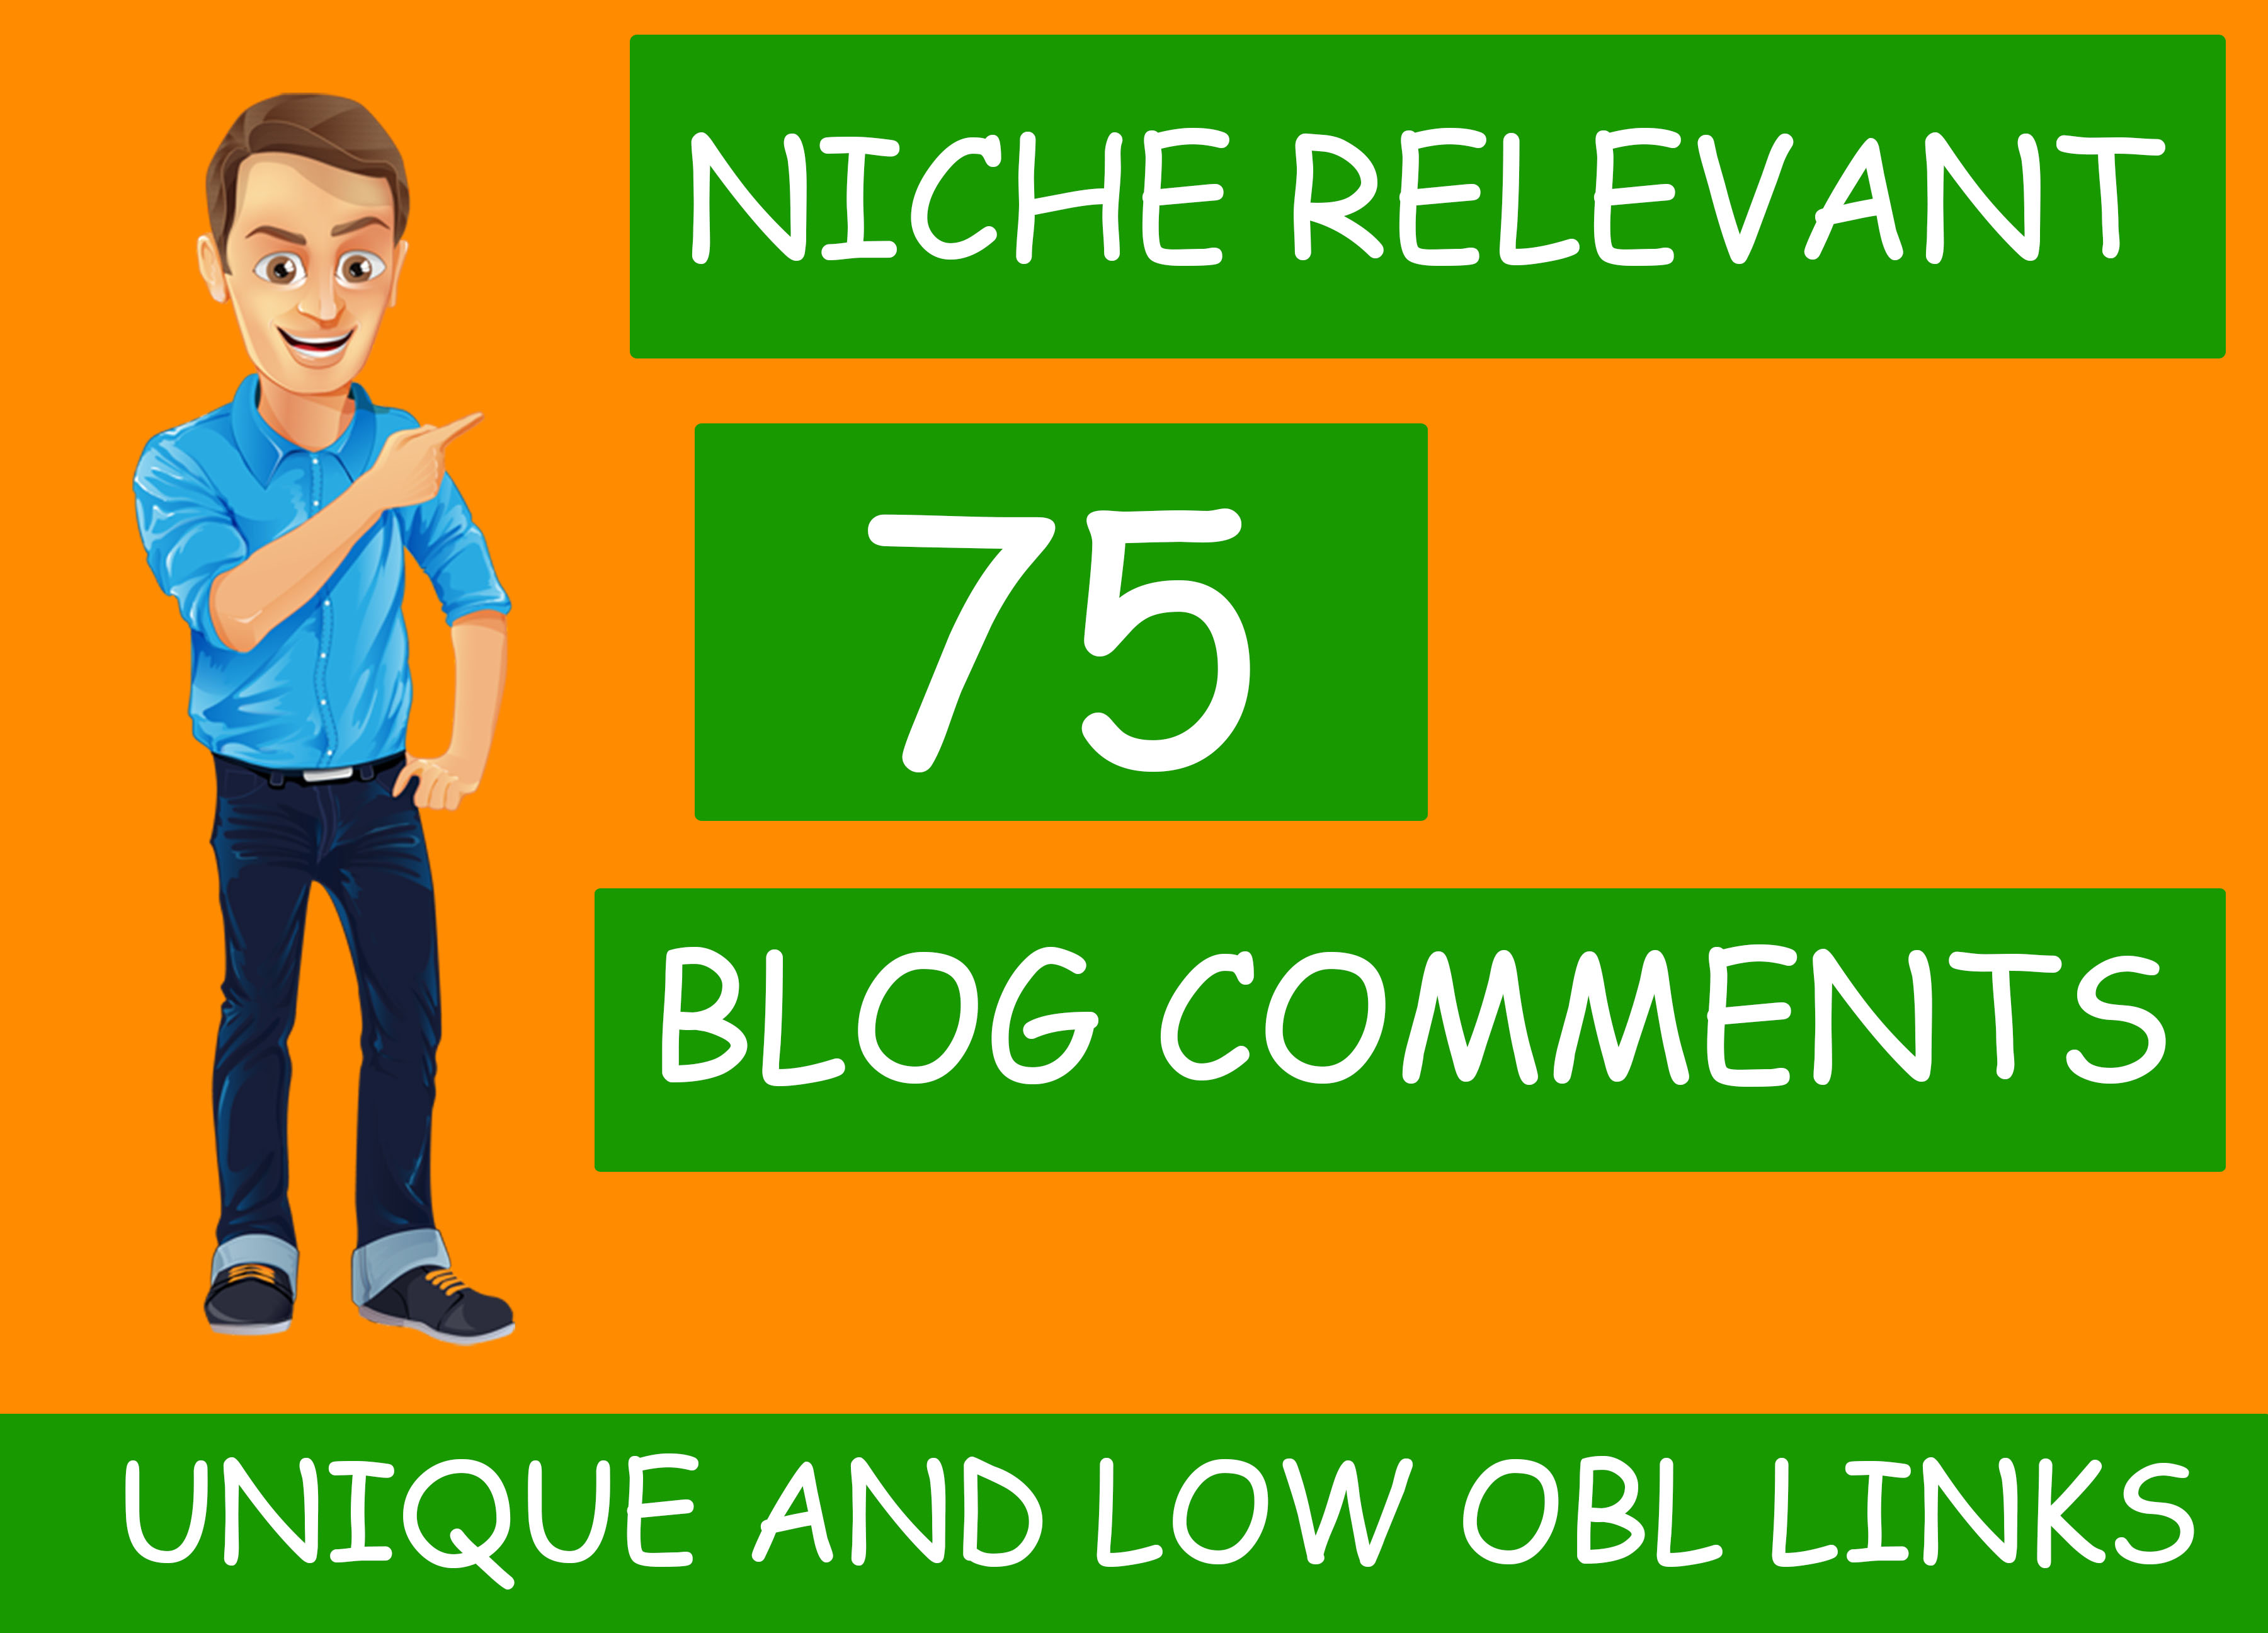 I will submit 75 niche related blog comments